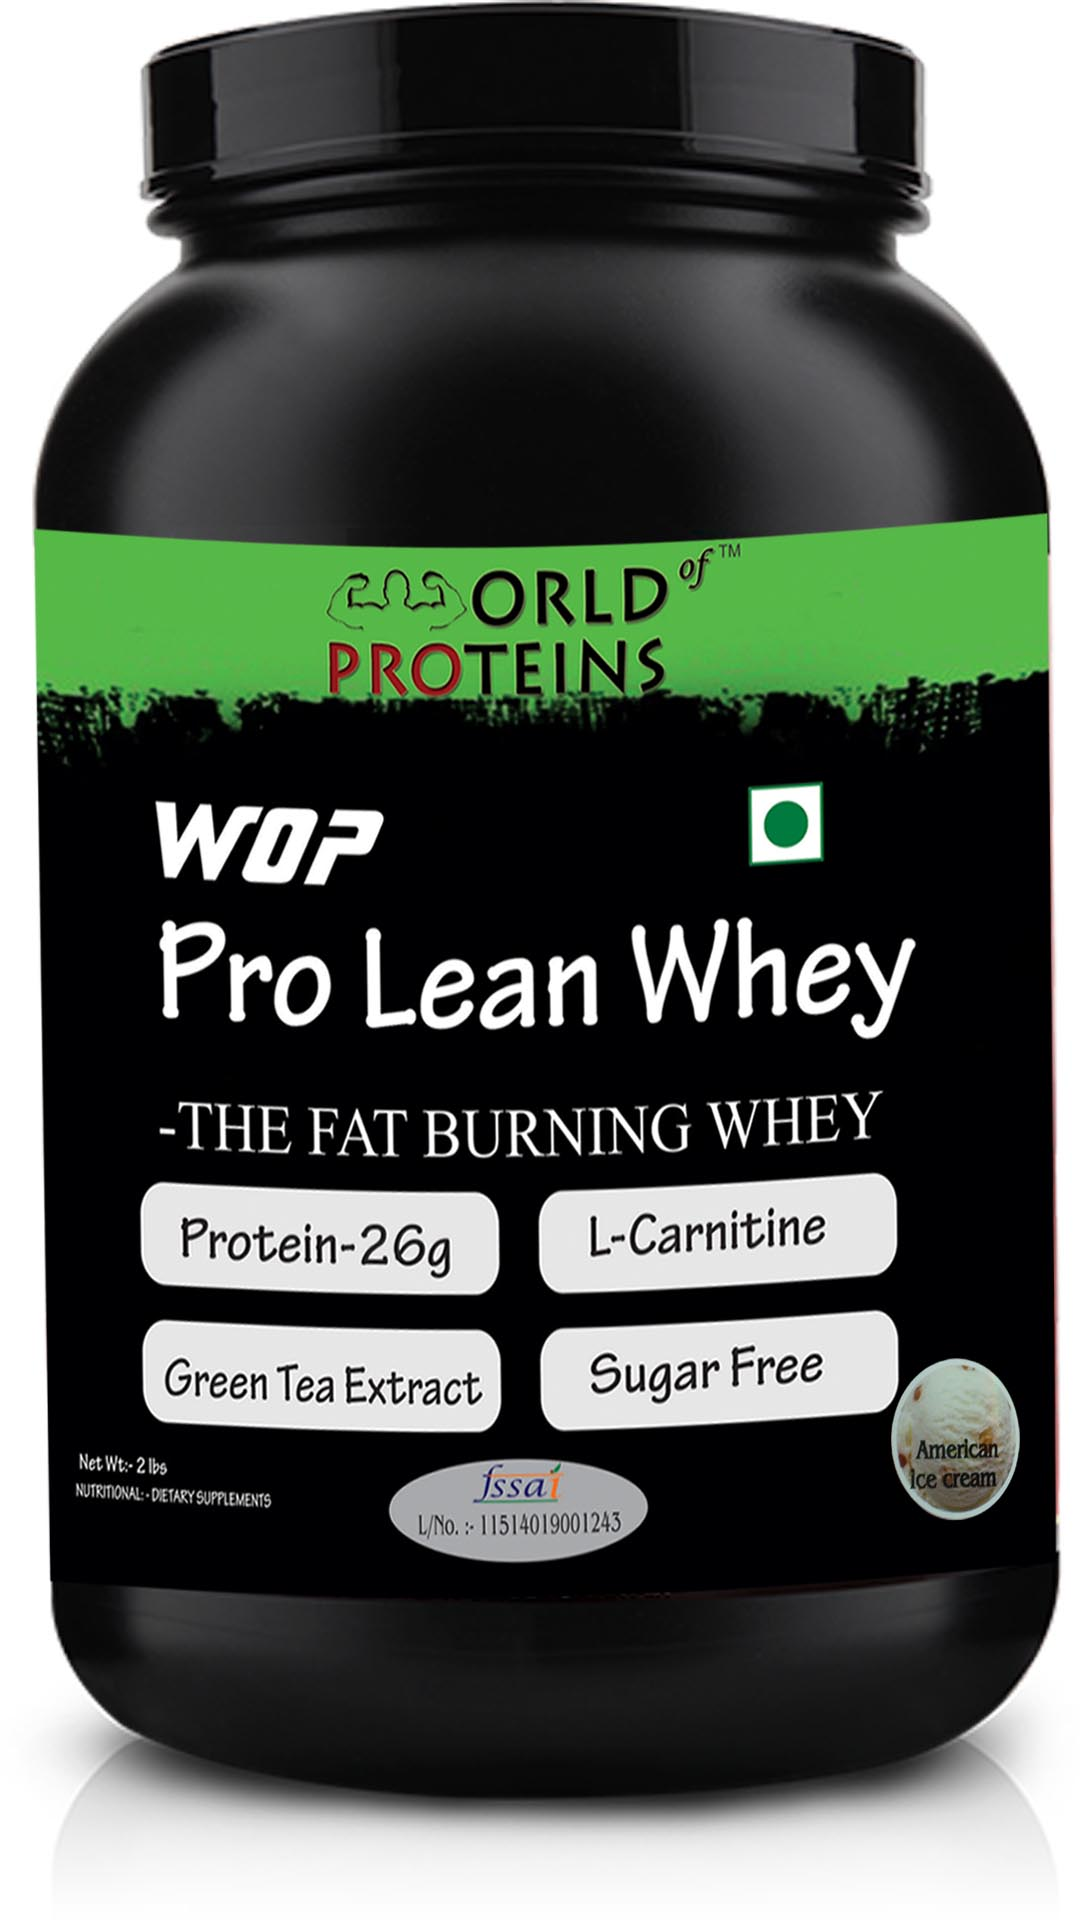 size_122948_Pro_Lean_Whey_2_Lbs_American_Ice_Cream_copy.jpg